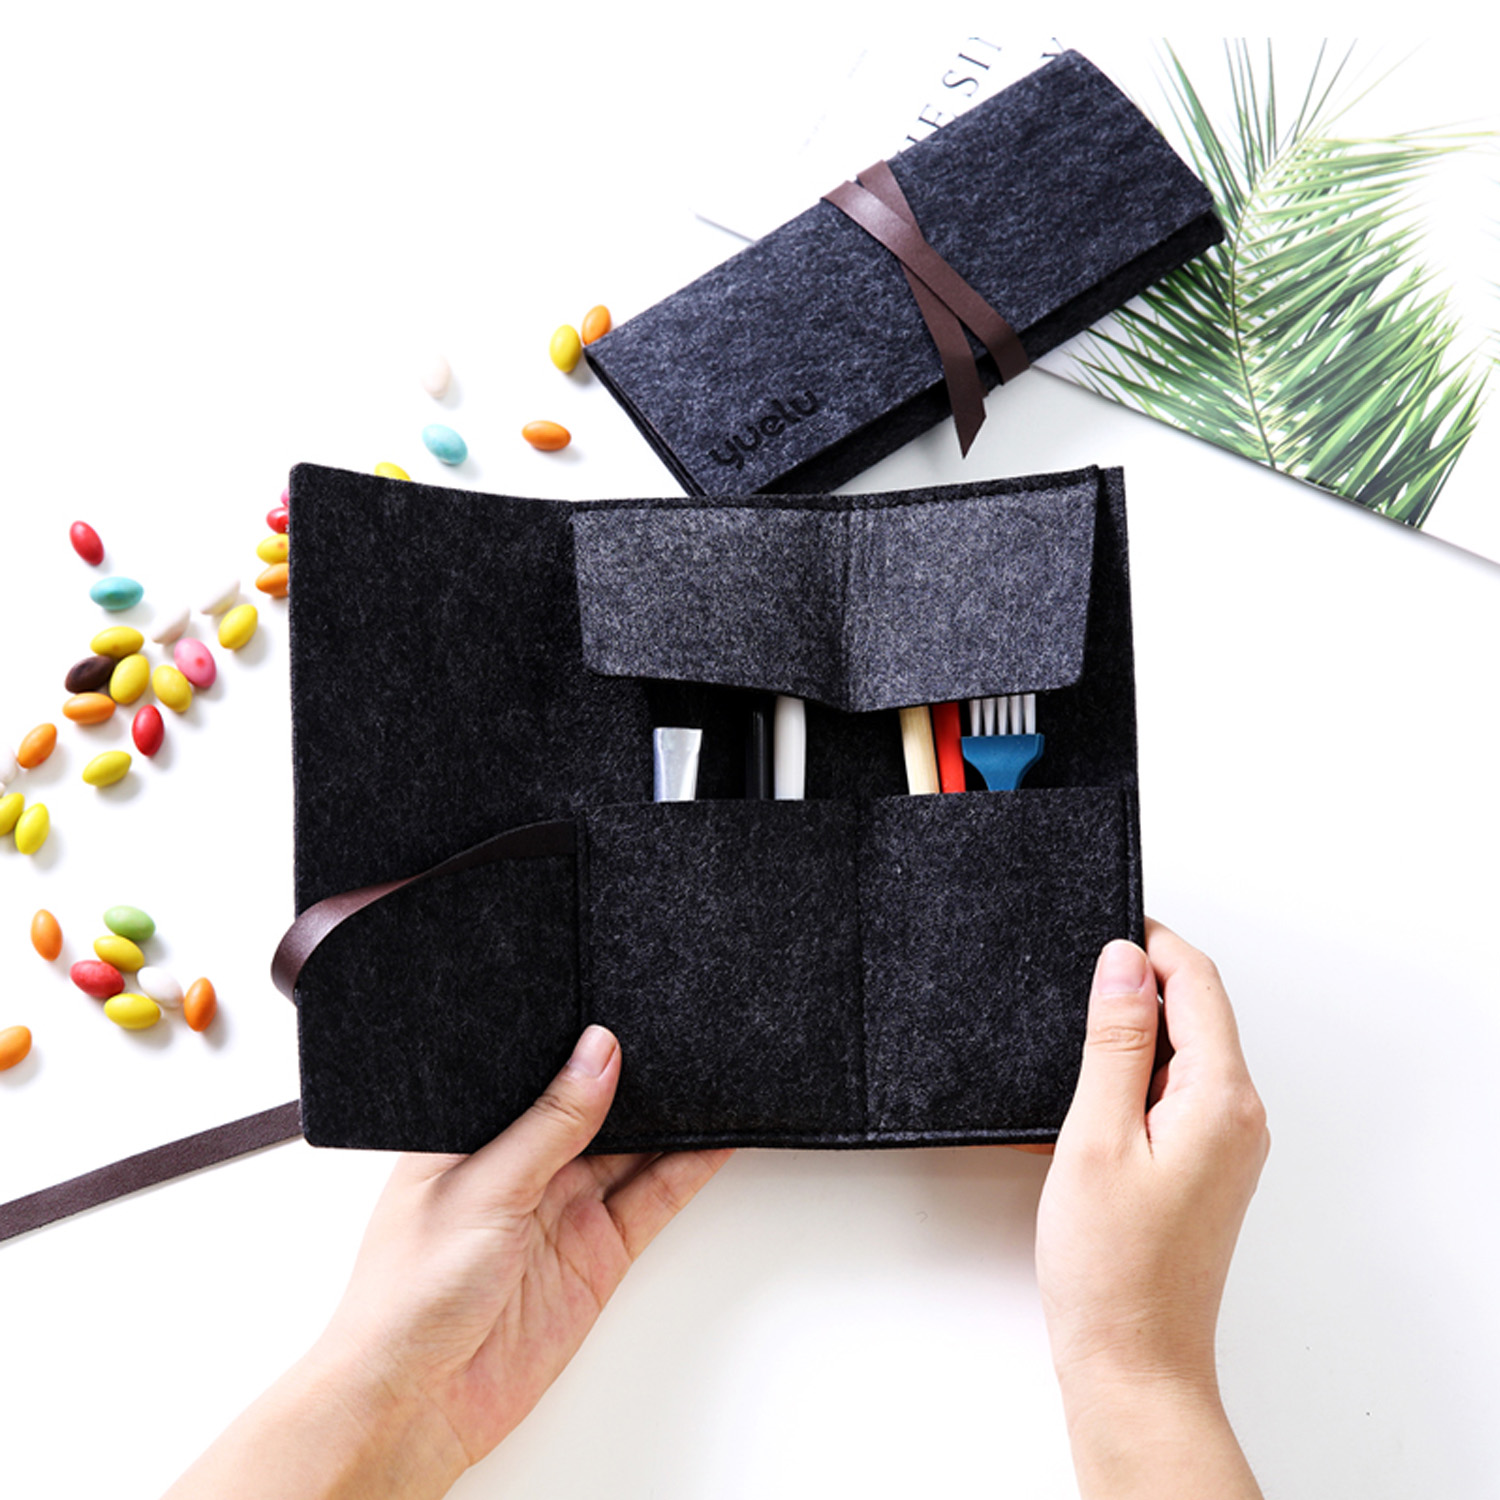 Fashion Foldable Felt Scraping Painting Art Tools Accessories Storage Bag Holder Pouch For Scraper Brush Pen Bamboo Sticks